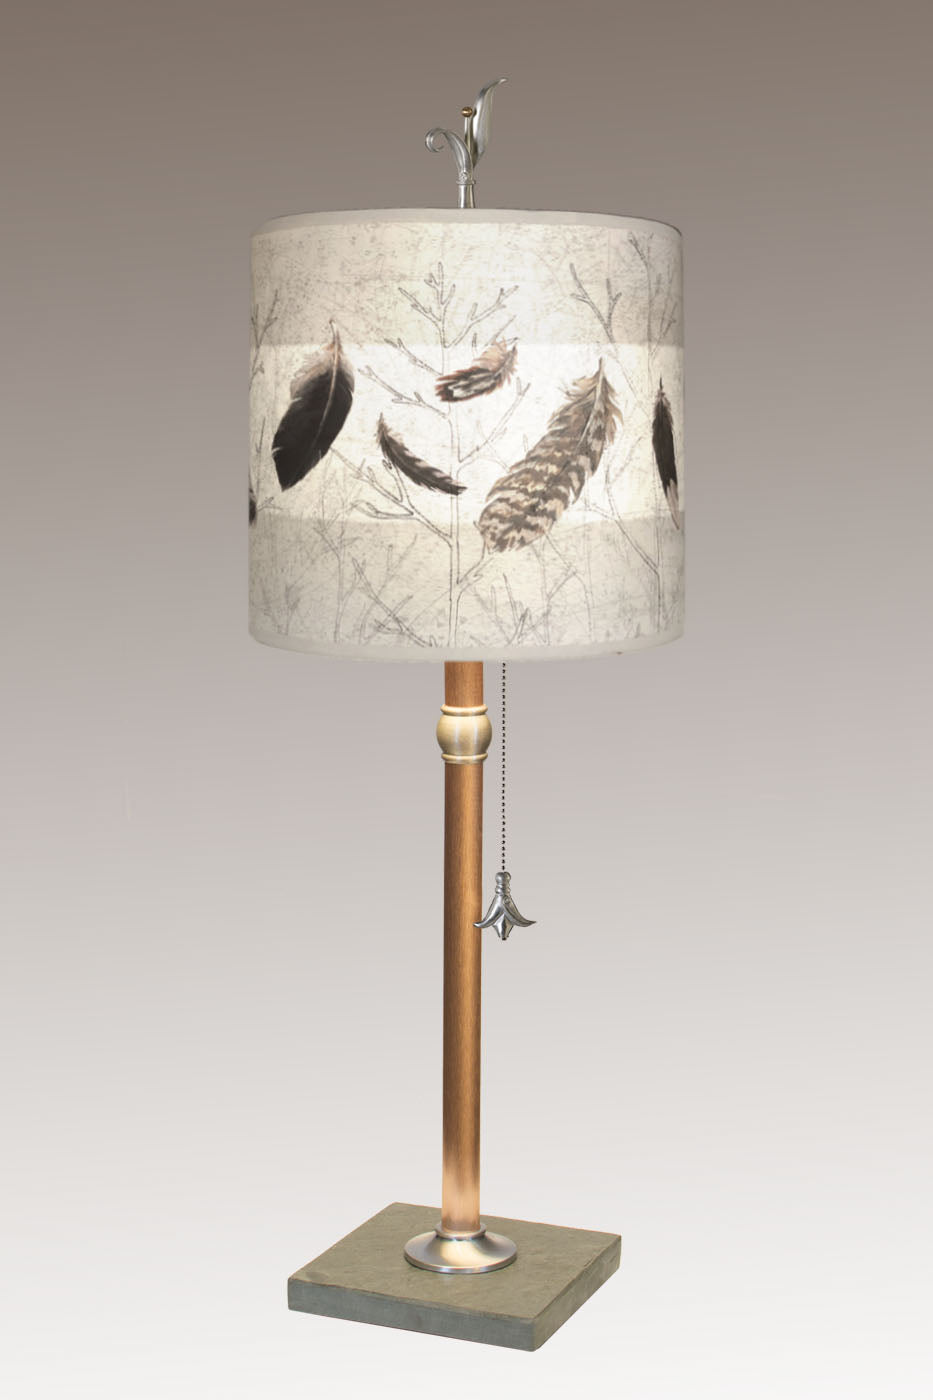 Copper Table Lamp with Medium Drum Shade in Feathers in Pebble